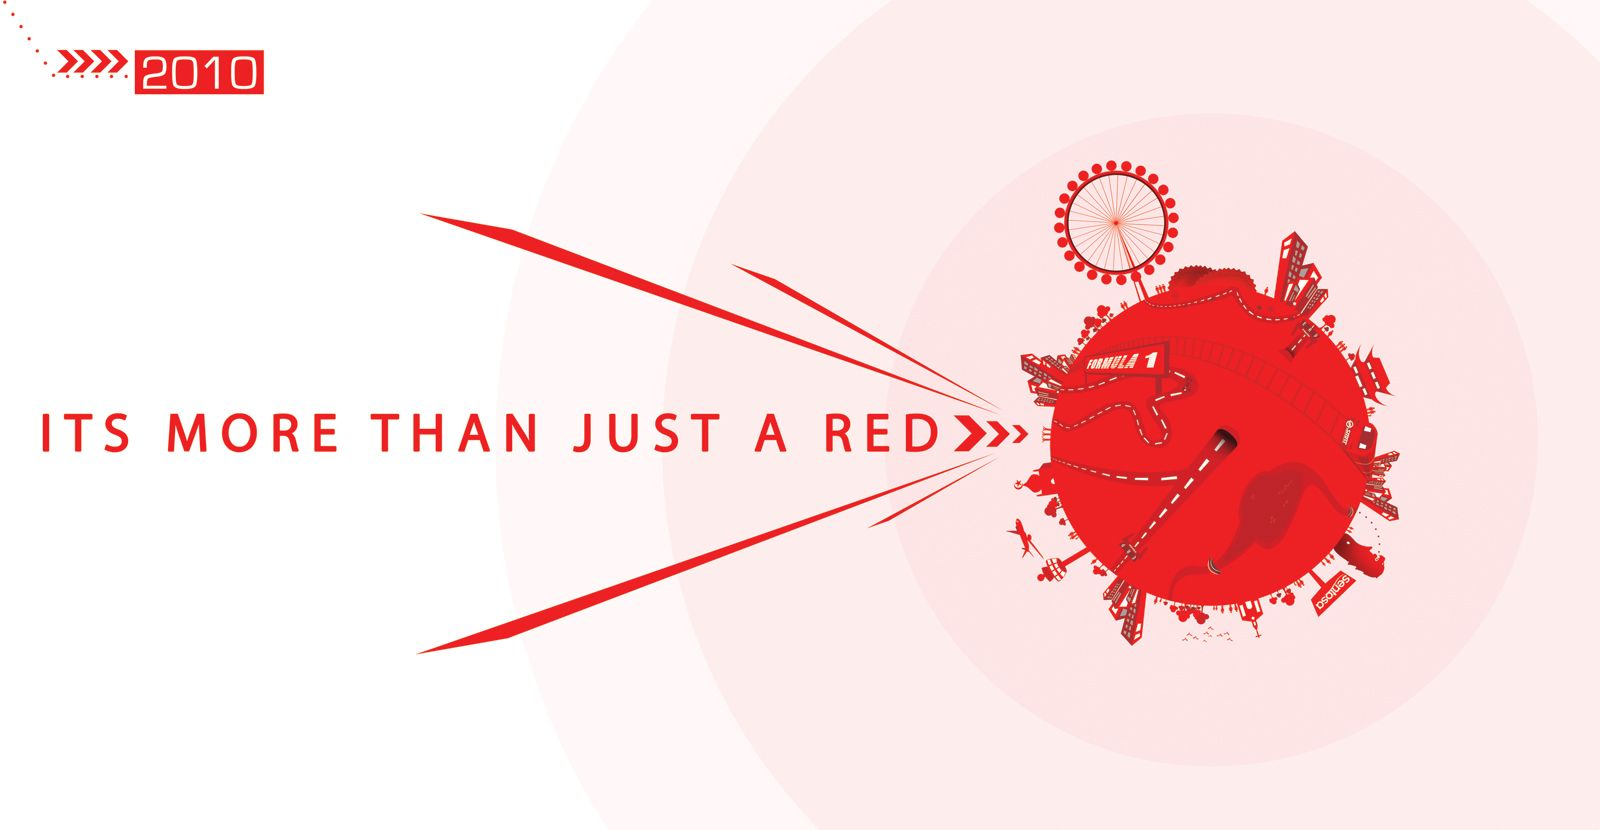 Best And Still My Personal Favorite Work Red Dot Planet Singapore By Me Red Dots Red Dots